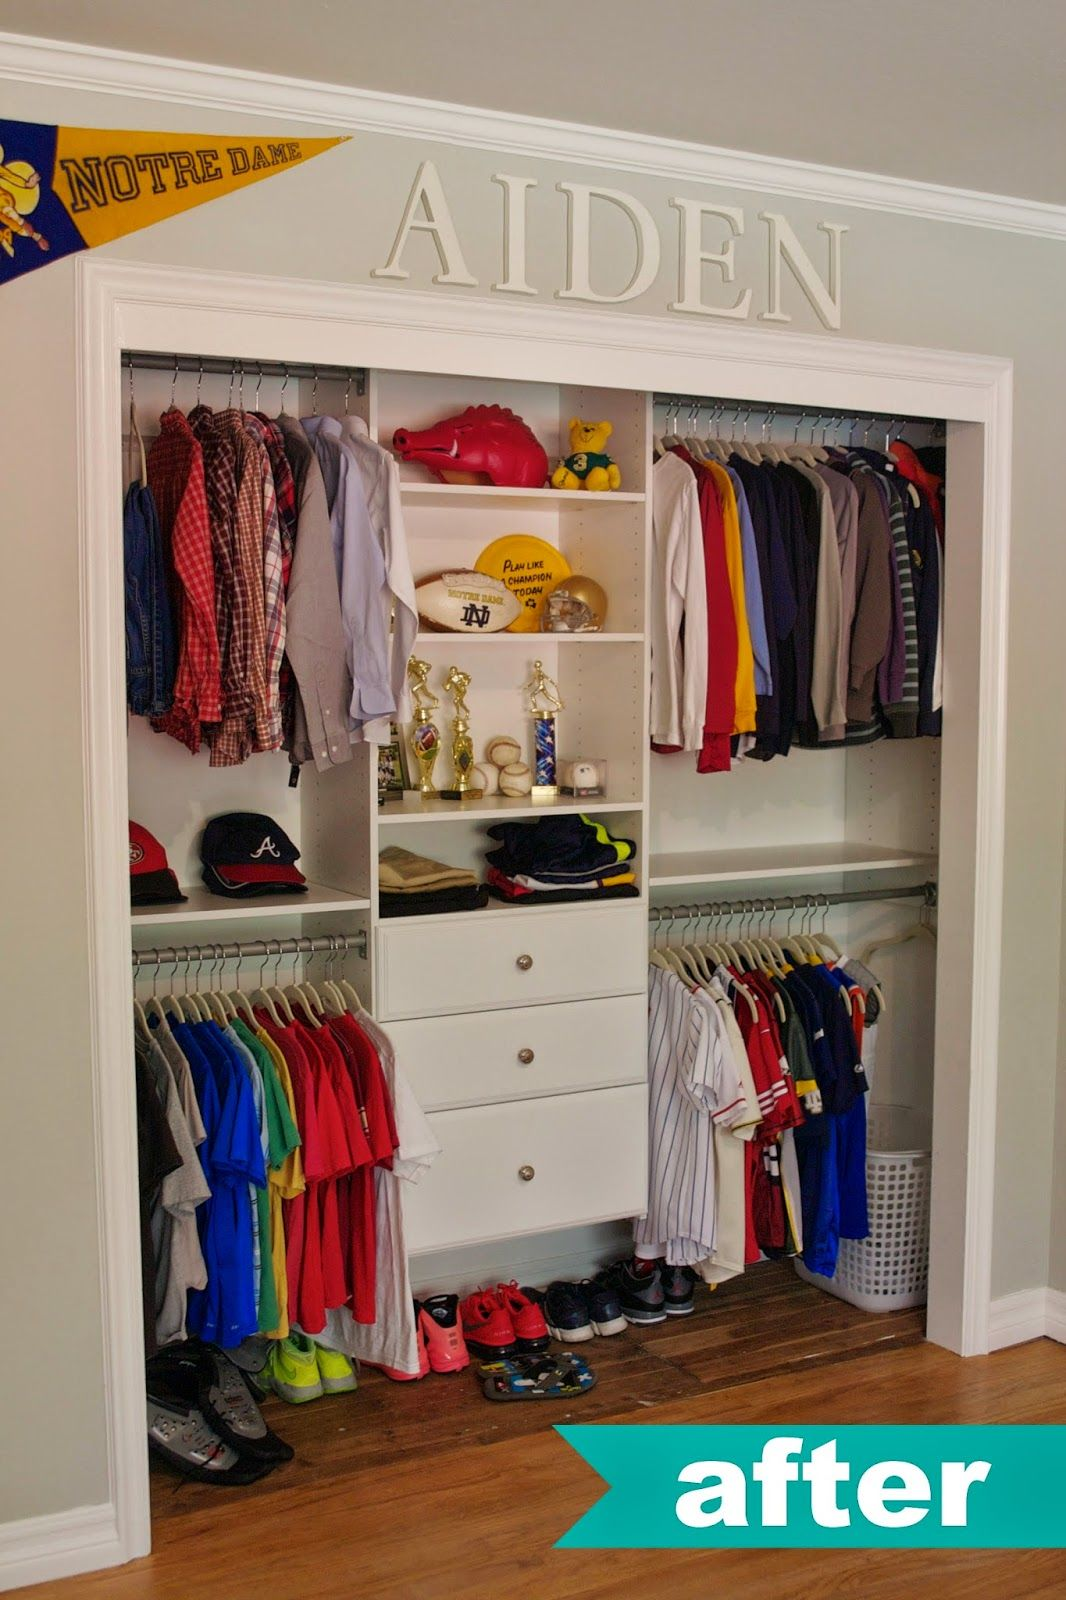 Kids closet organization ideas pinterest martha for Storage for kids rooms